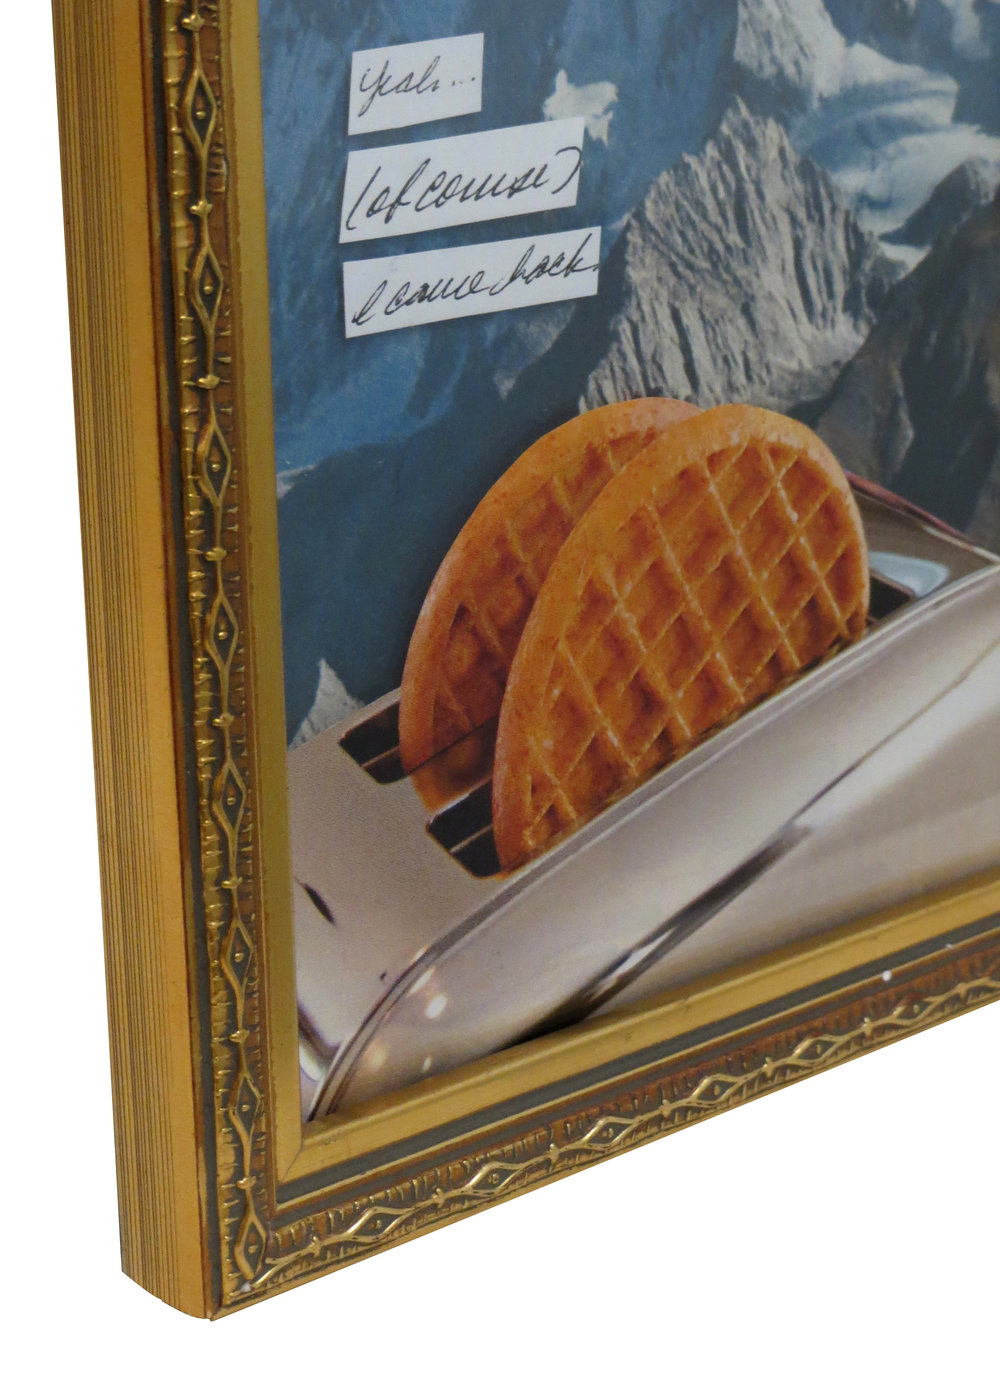 Waffles (detail)